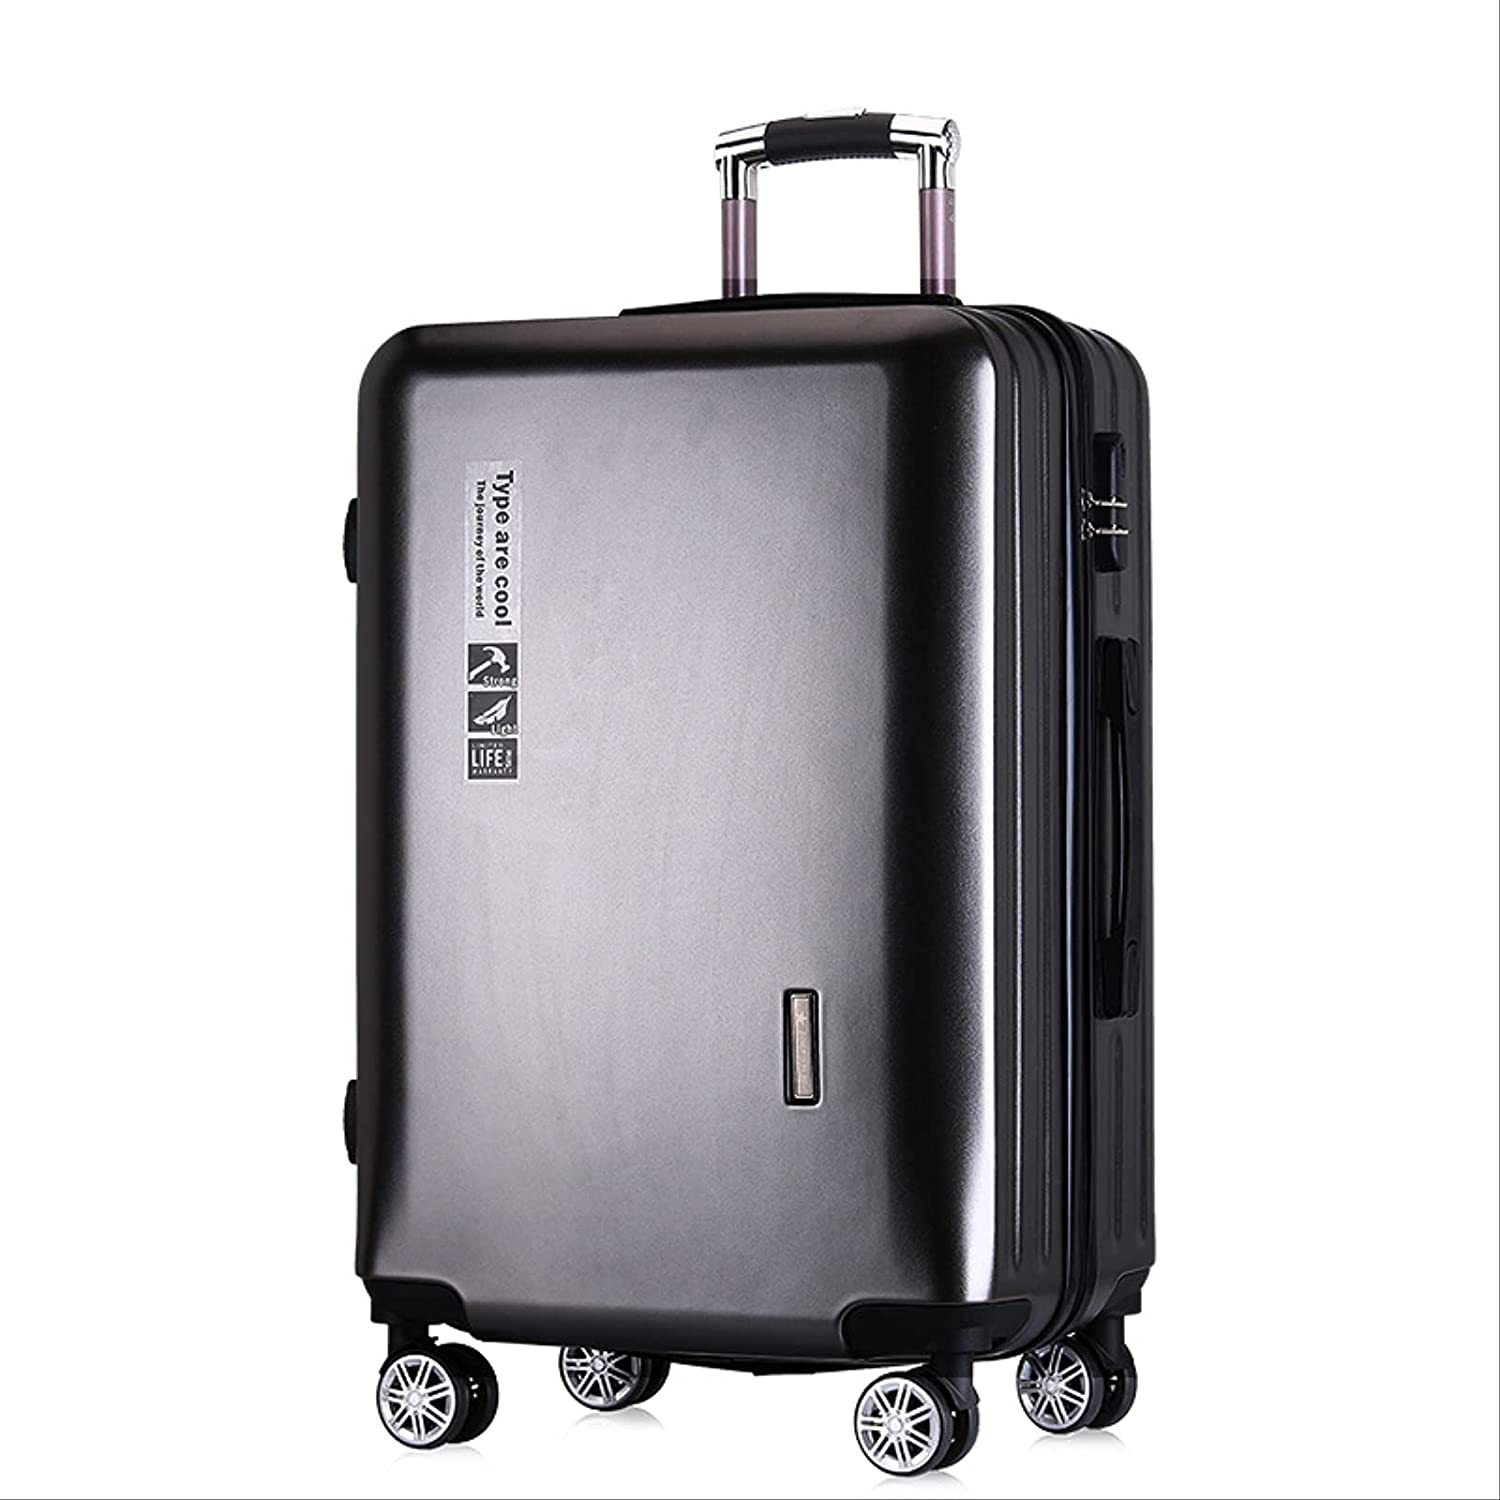 CZJC Universal Wheel New life Pc Frame Suitcase Be super welcome Aluminum Trolley